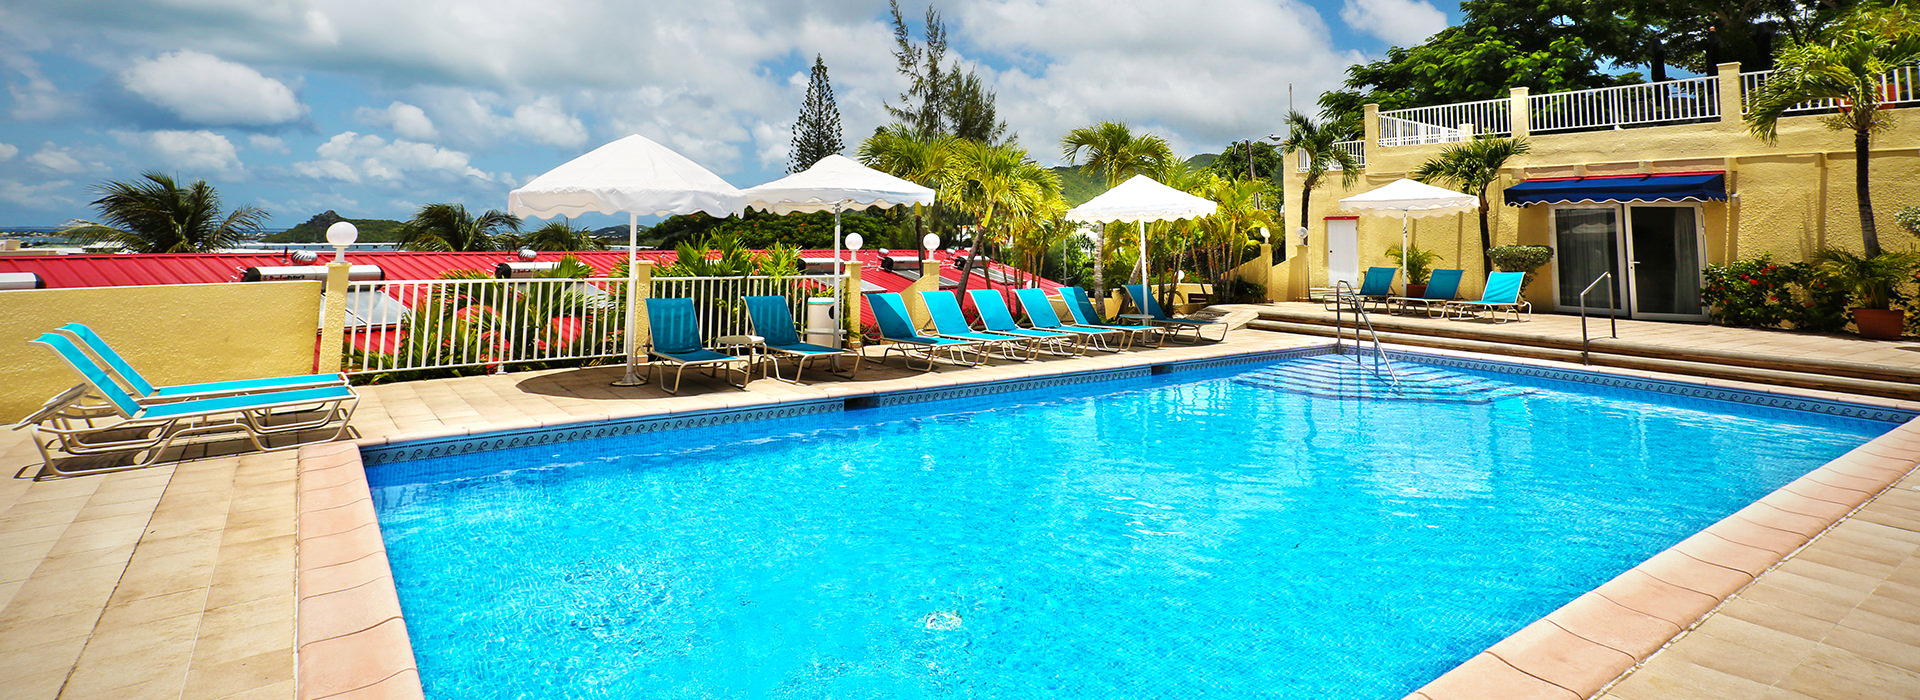 Simpson Bay Beach Resort & Marina pool